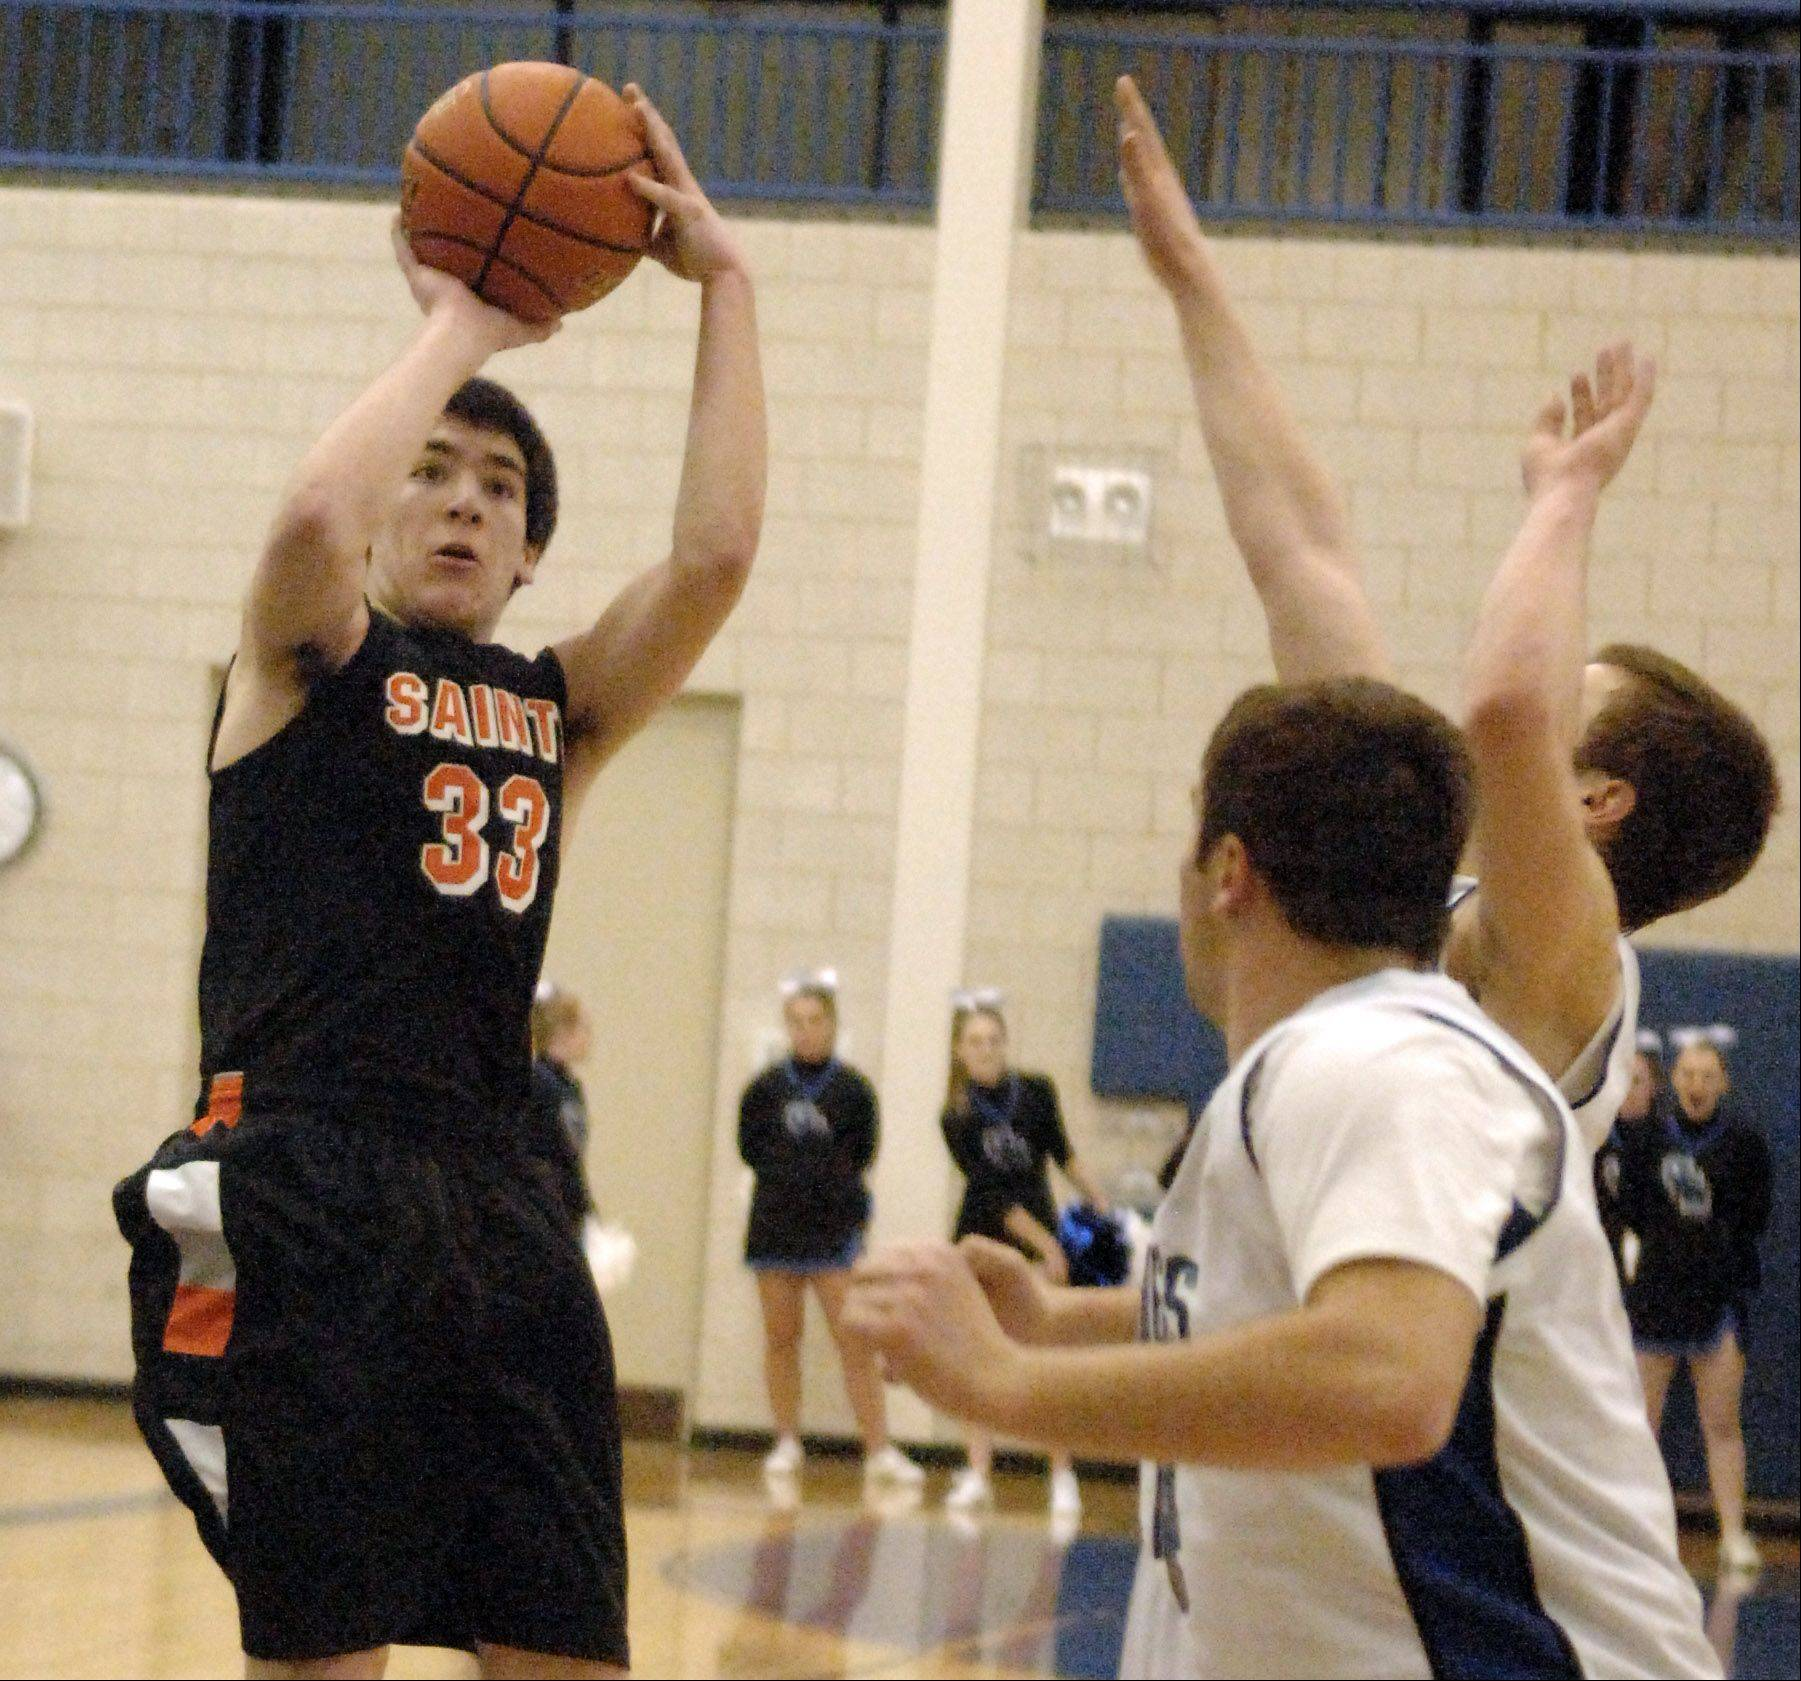 St. Charles East's Jake Asquini scores from the outside.